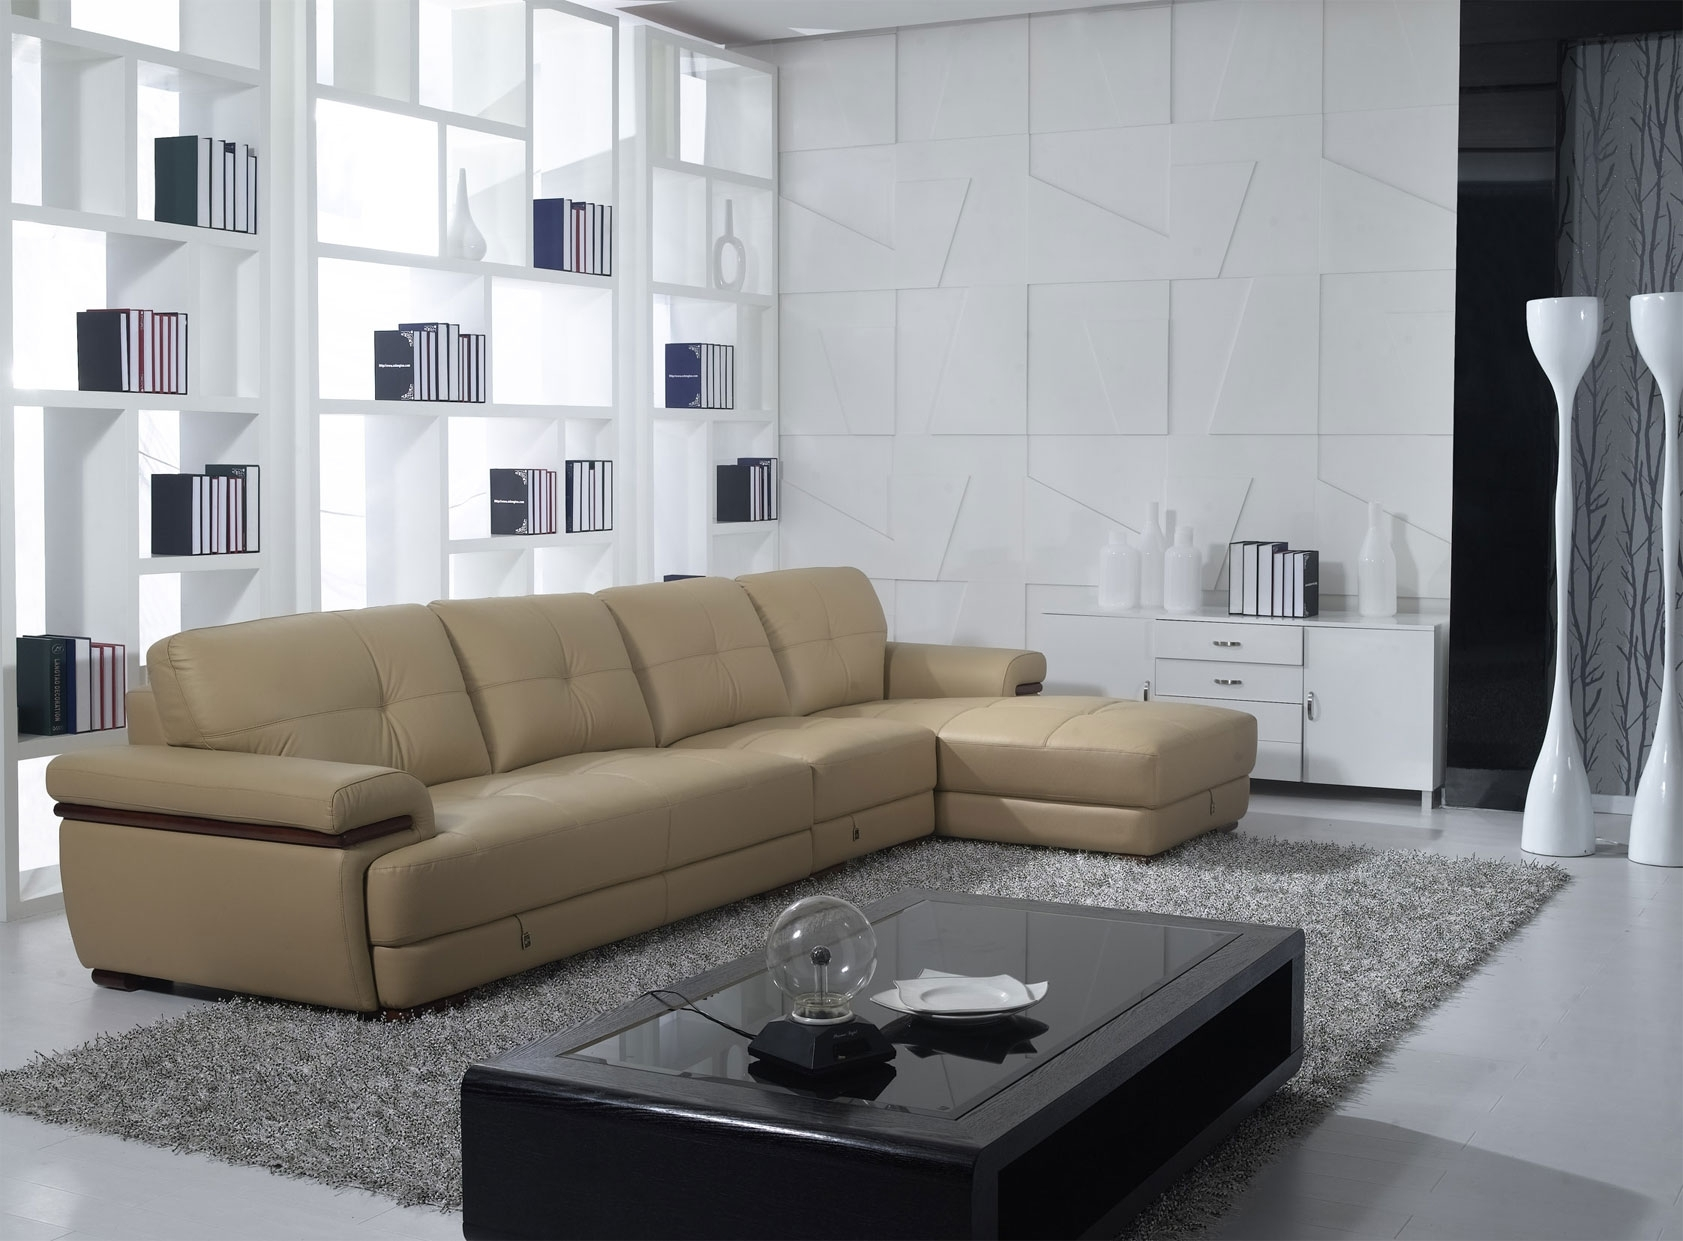 Fancy Quality Sectional Sofas 15 And Couches Ideas With High Sofa Throughout Quality Sectional Sofas (View 2 of 10)